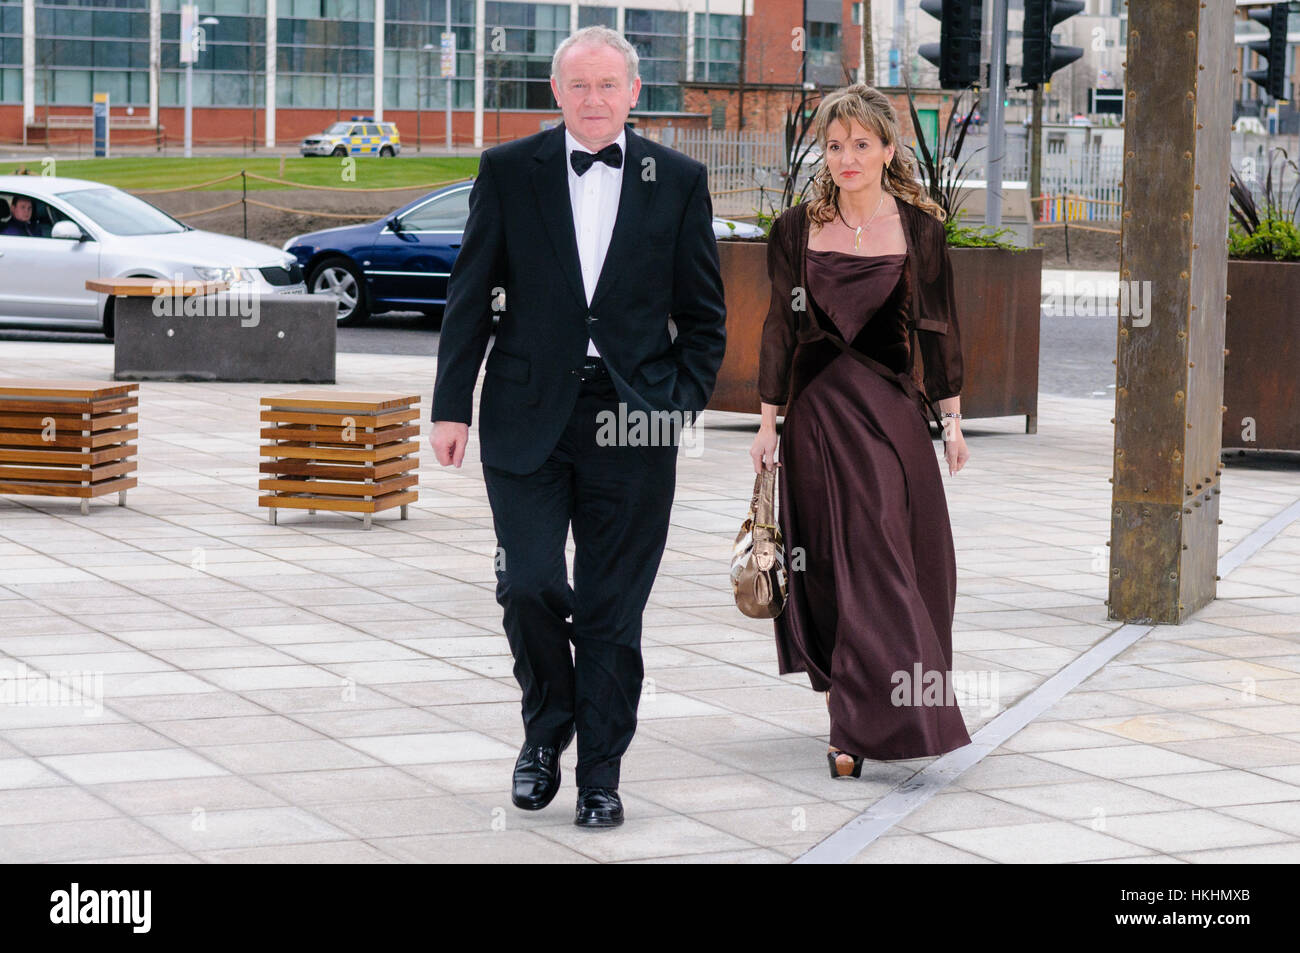 Belfast, UK. 30/03/2012 - Martin McGuinness and Martina Anderson (Sinn Fein) arrive at Belfast's  £97M - Stock Image